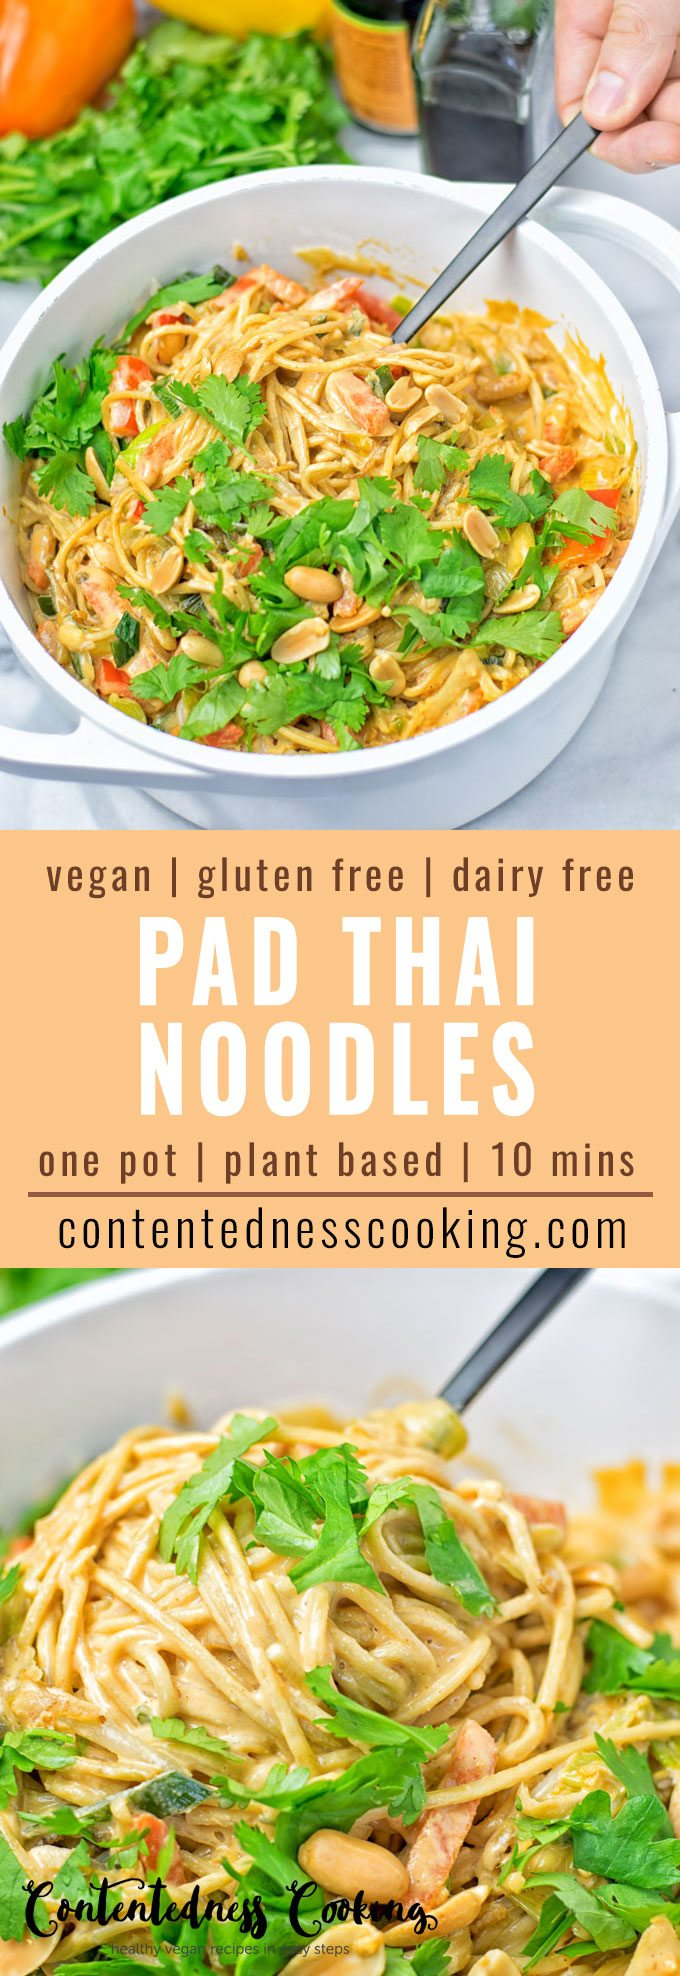 Collage of two pictures of the One Pot Pad Thai Noodles with recipe title text.